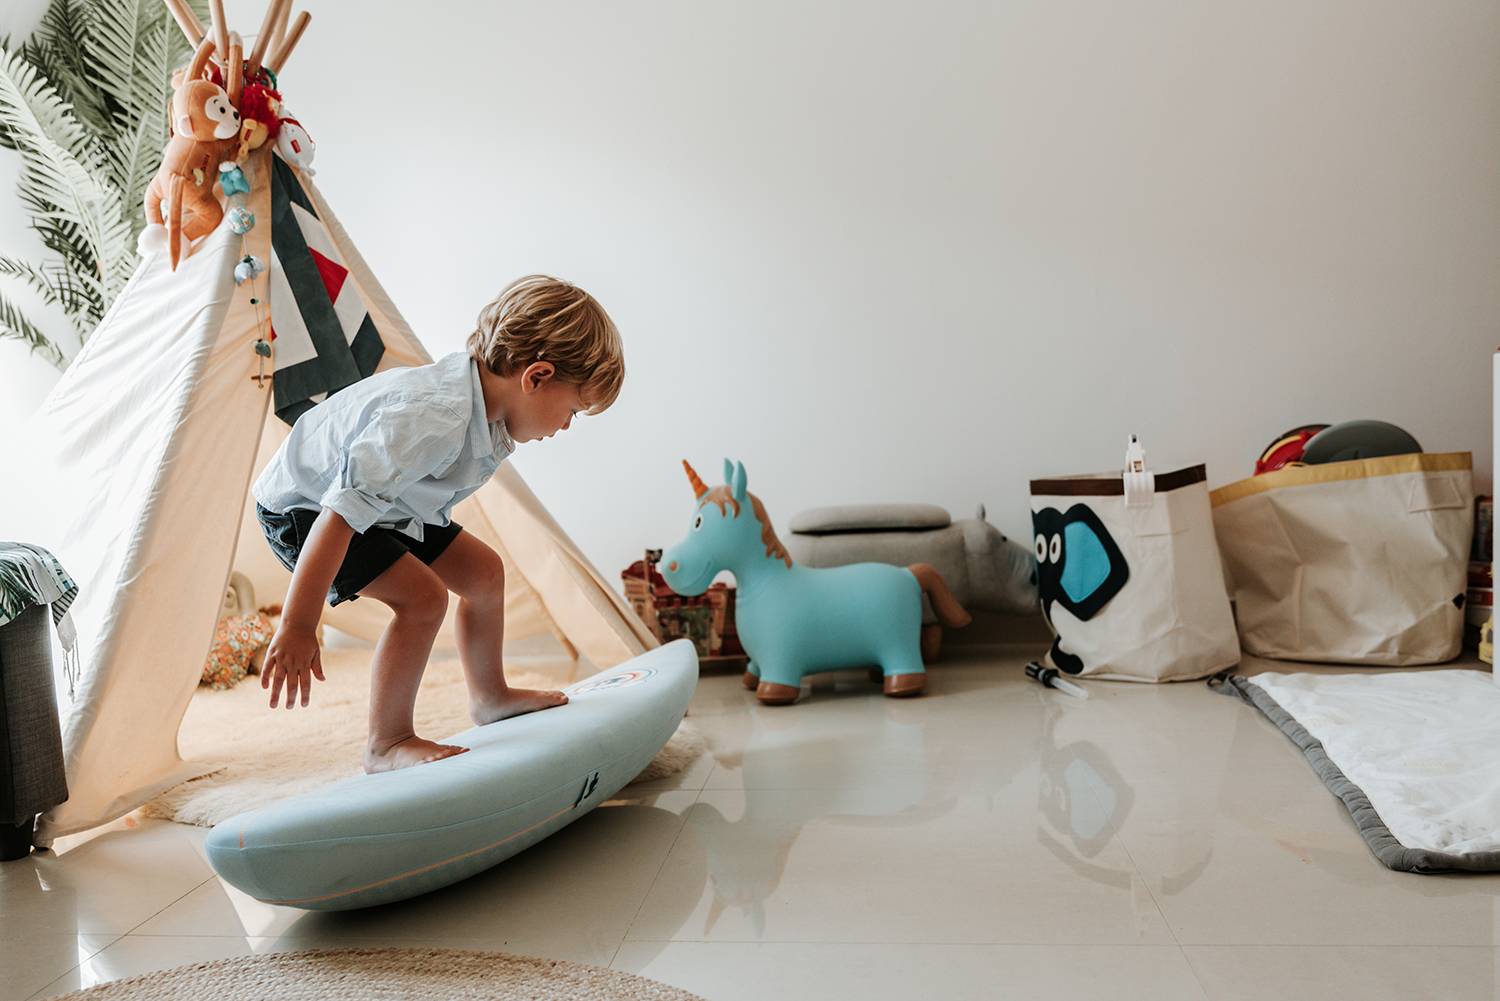 Boy playing with surf board